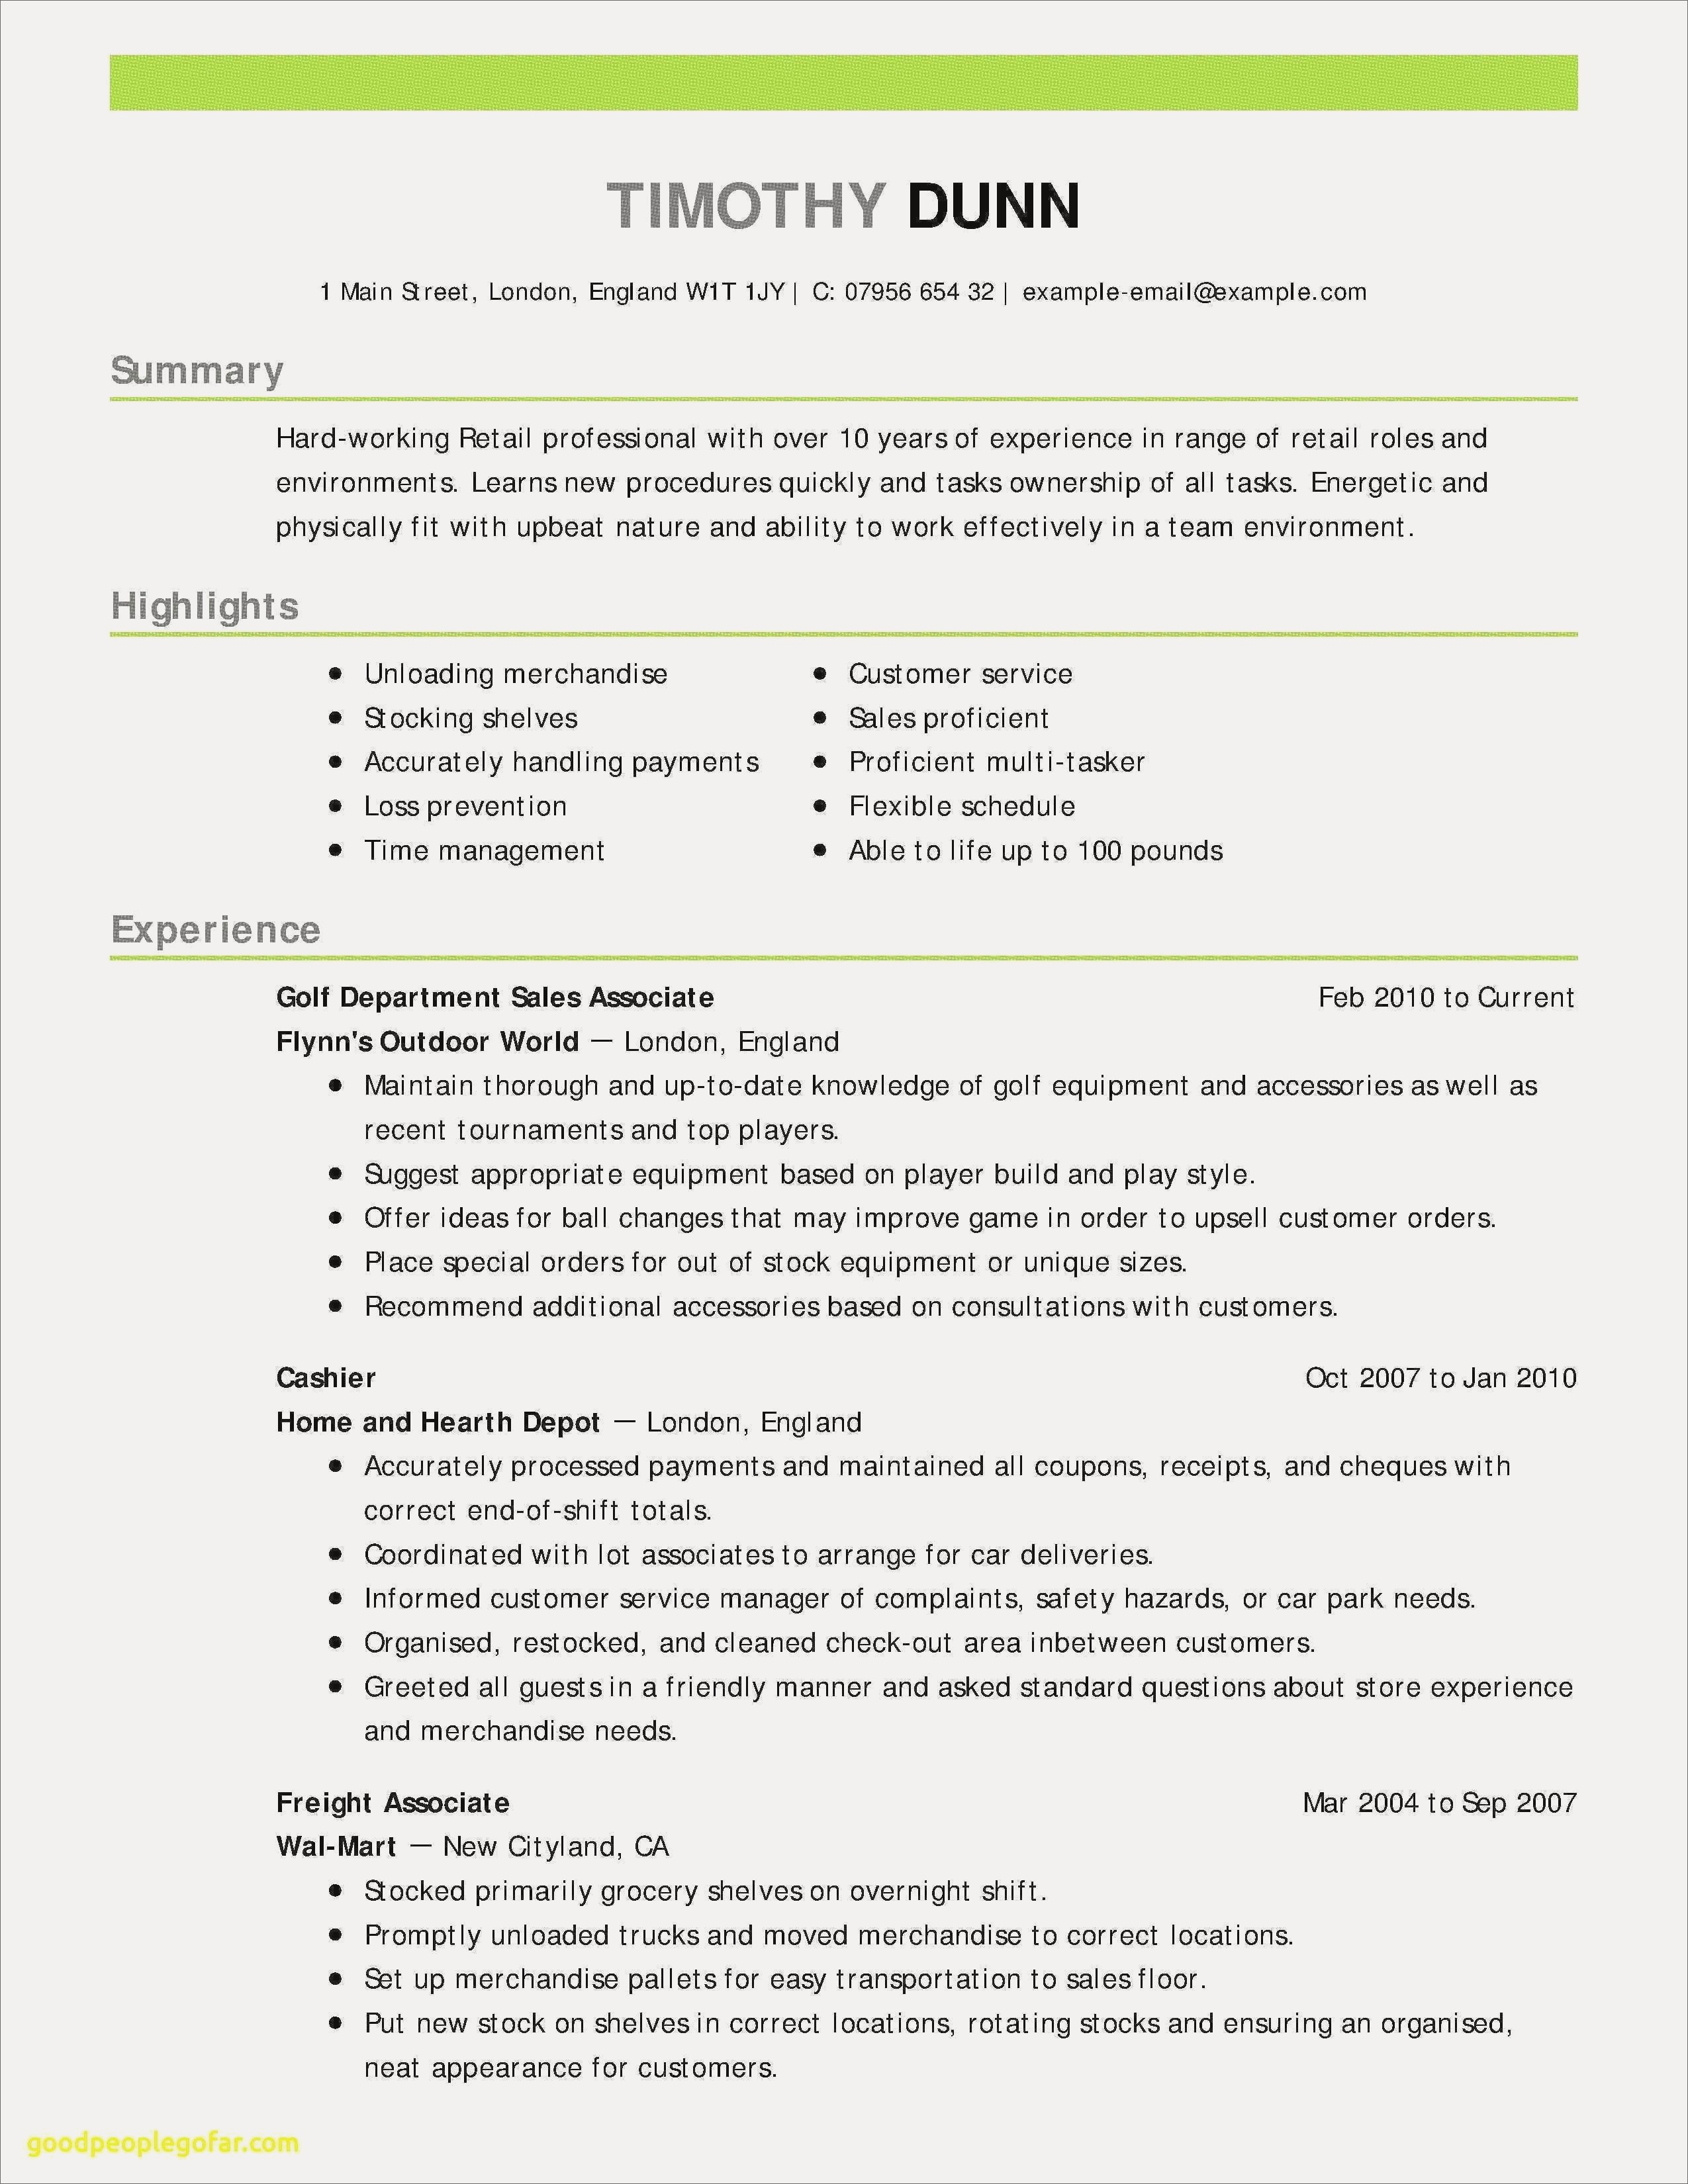 Resume Samples Skills - Resume Examples Skills and Abilities Best Customer Service Resume